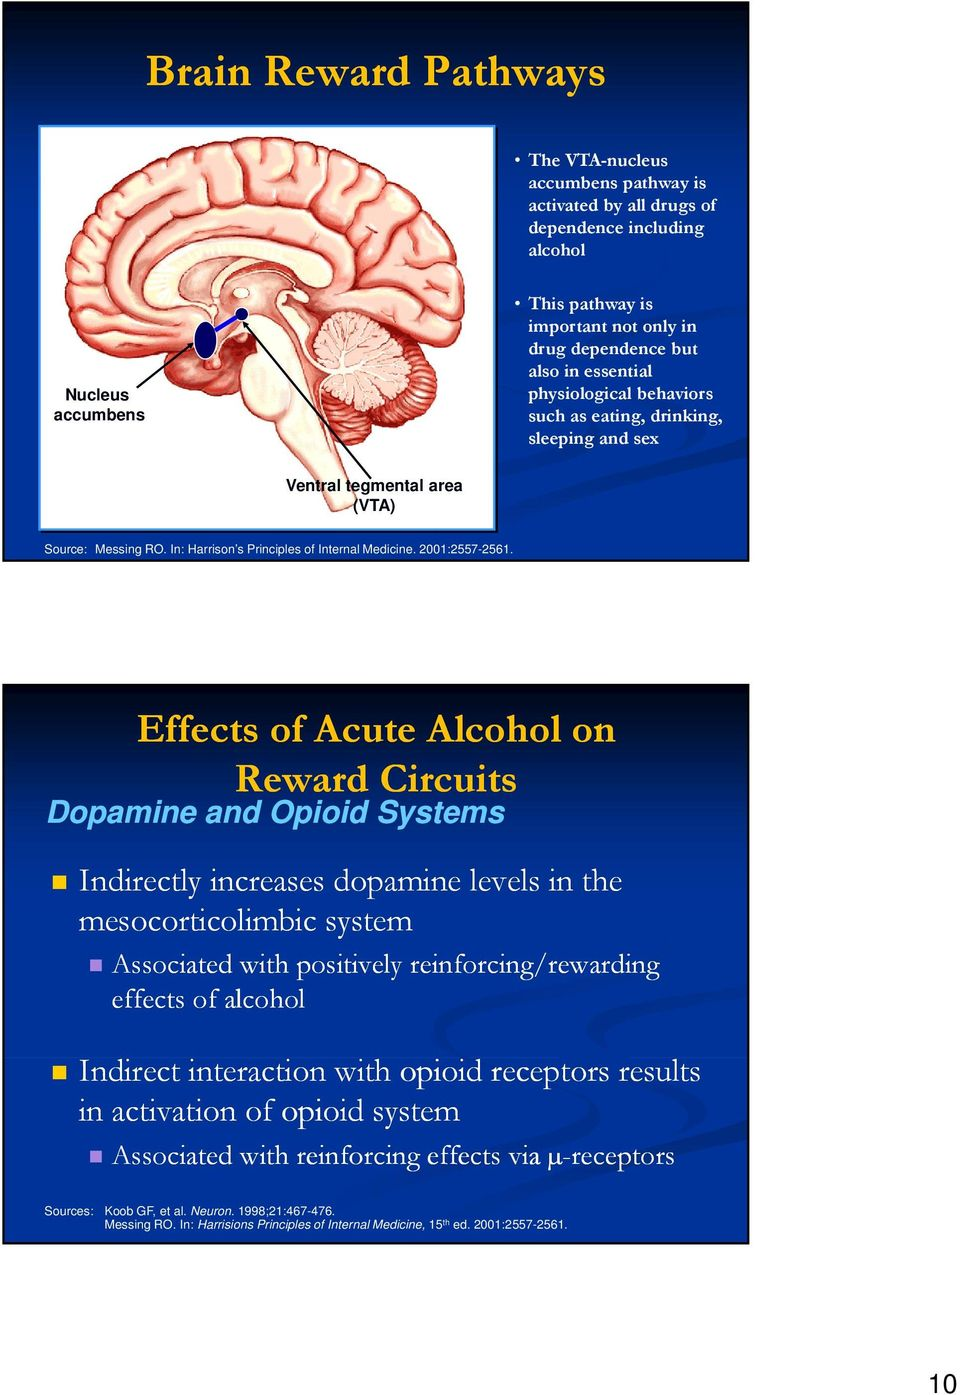 Effects of Acute Alcohol on Reward Circuits Dopamine and Opioid Systems Indirectly increases dopamine levels l in the mesocorticolimbic system Associated with positively reinforcing/rewarding effects